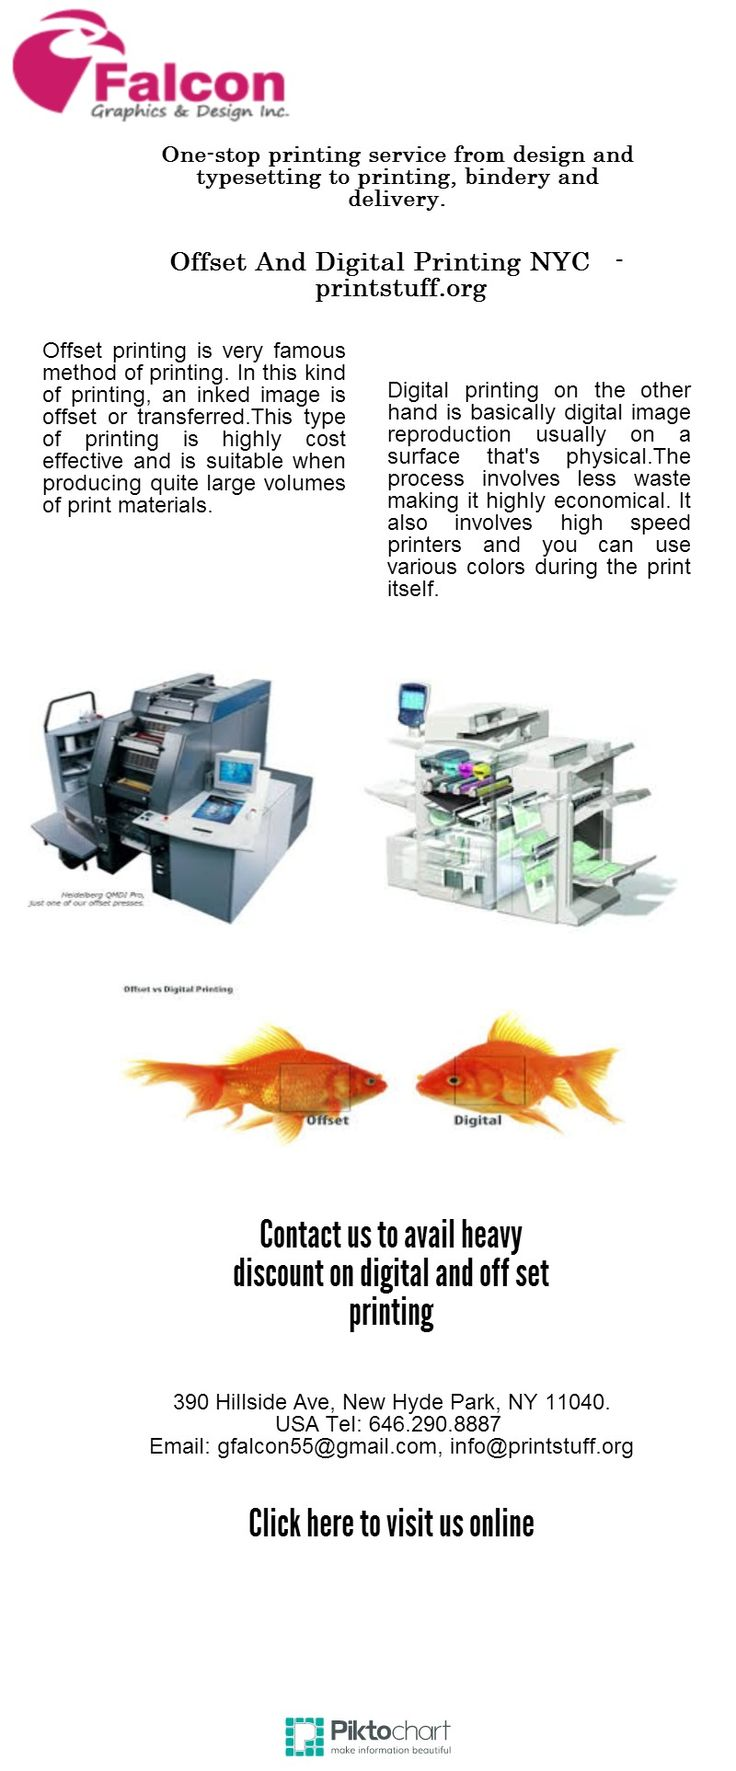 Offset printing is very famous method of printing. In this kind of printing, an inked image  is offset or transferred.This type of printing is highly cost effective and is suitable when  producing quite large volumes of print materials.